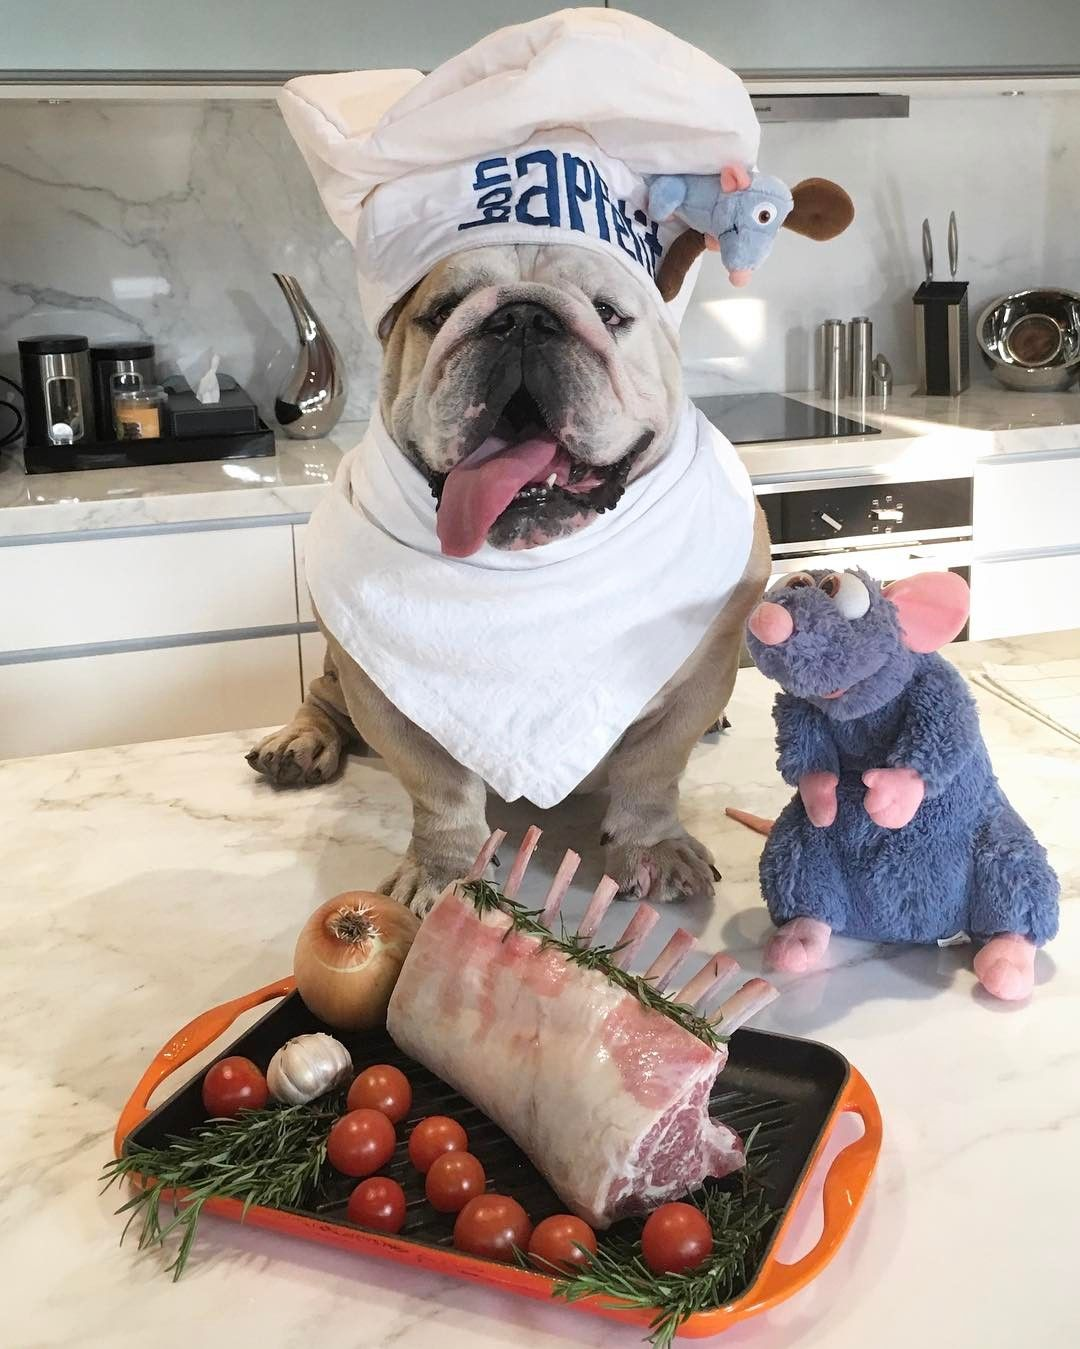 We Would Like To Hire This Chef Immediately Www Bullymake Com Via